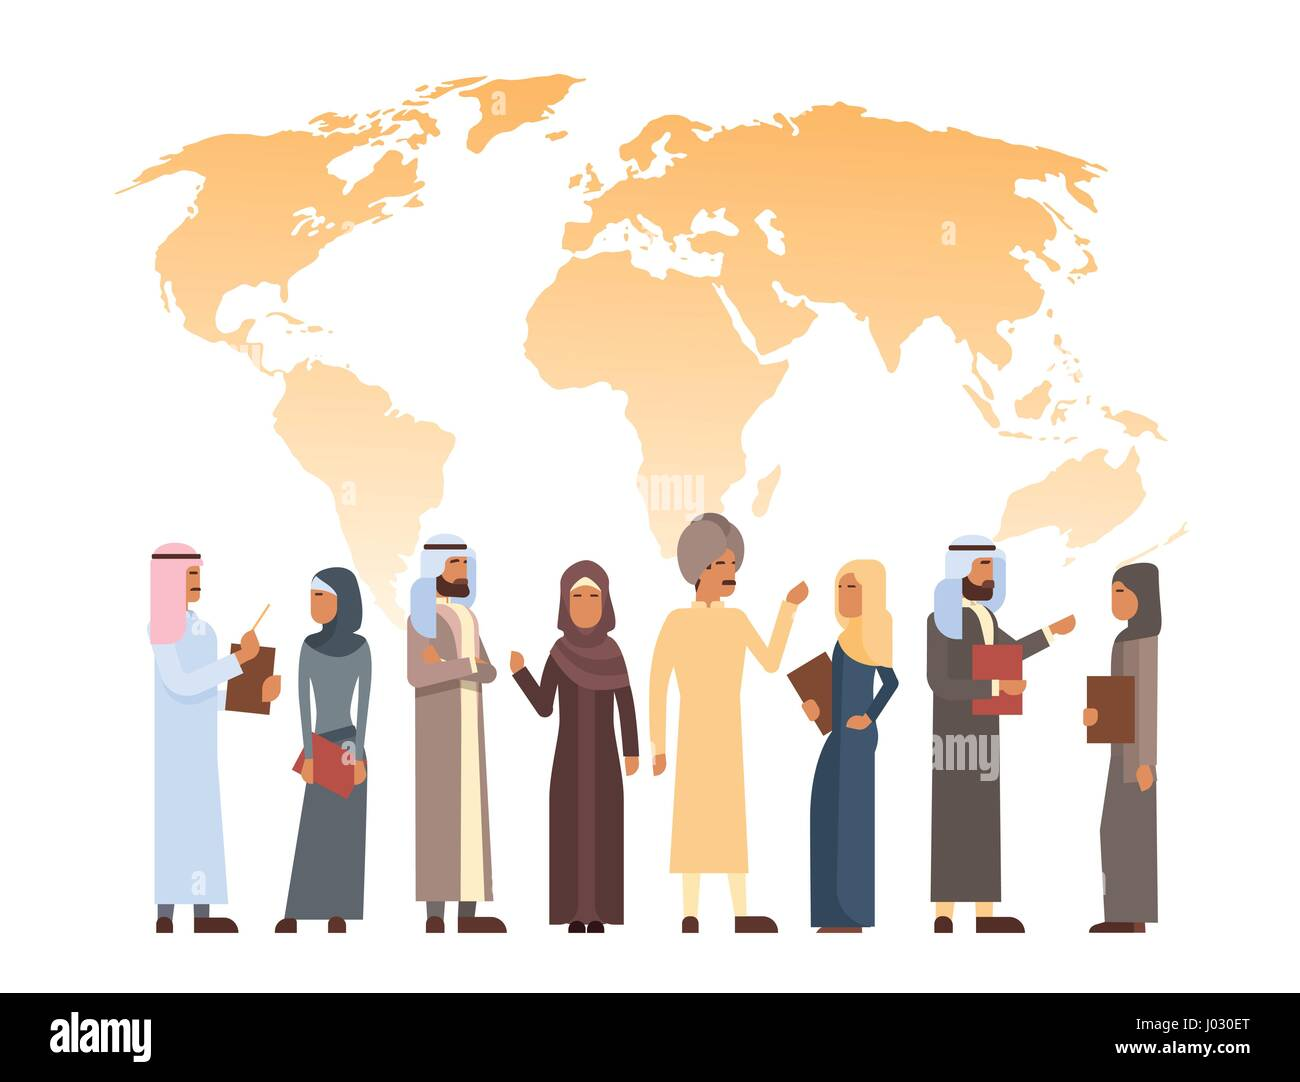 Arab Man And Woman Group Over World Map, Islam Businessman Businesswoman Wearing Traditional Clothes - Stock Image